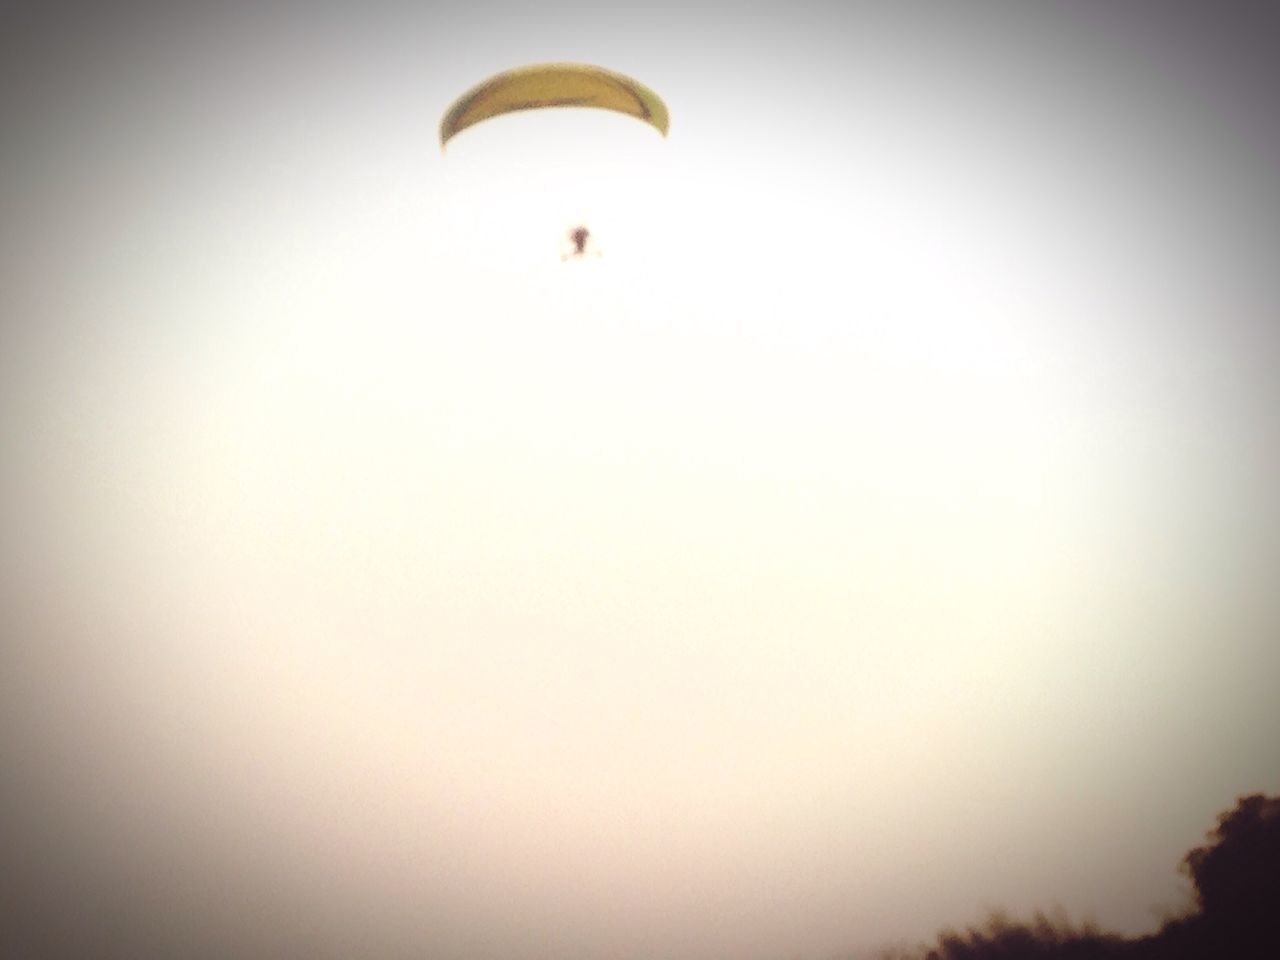 Paragliding Adventure Thrill Best Experience Sky Is The Limit